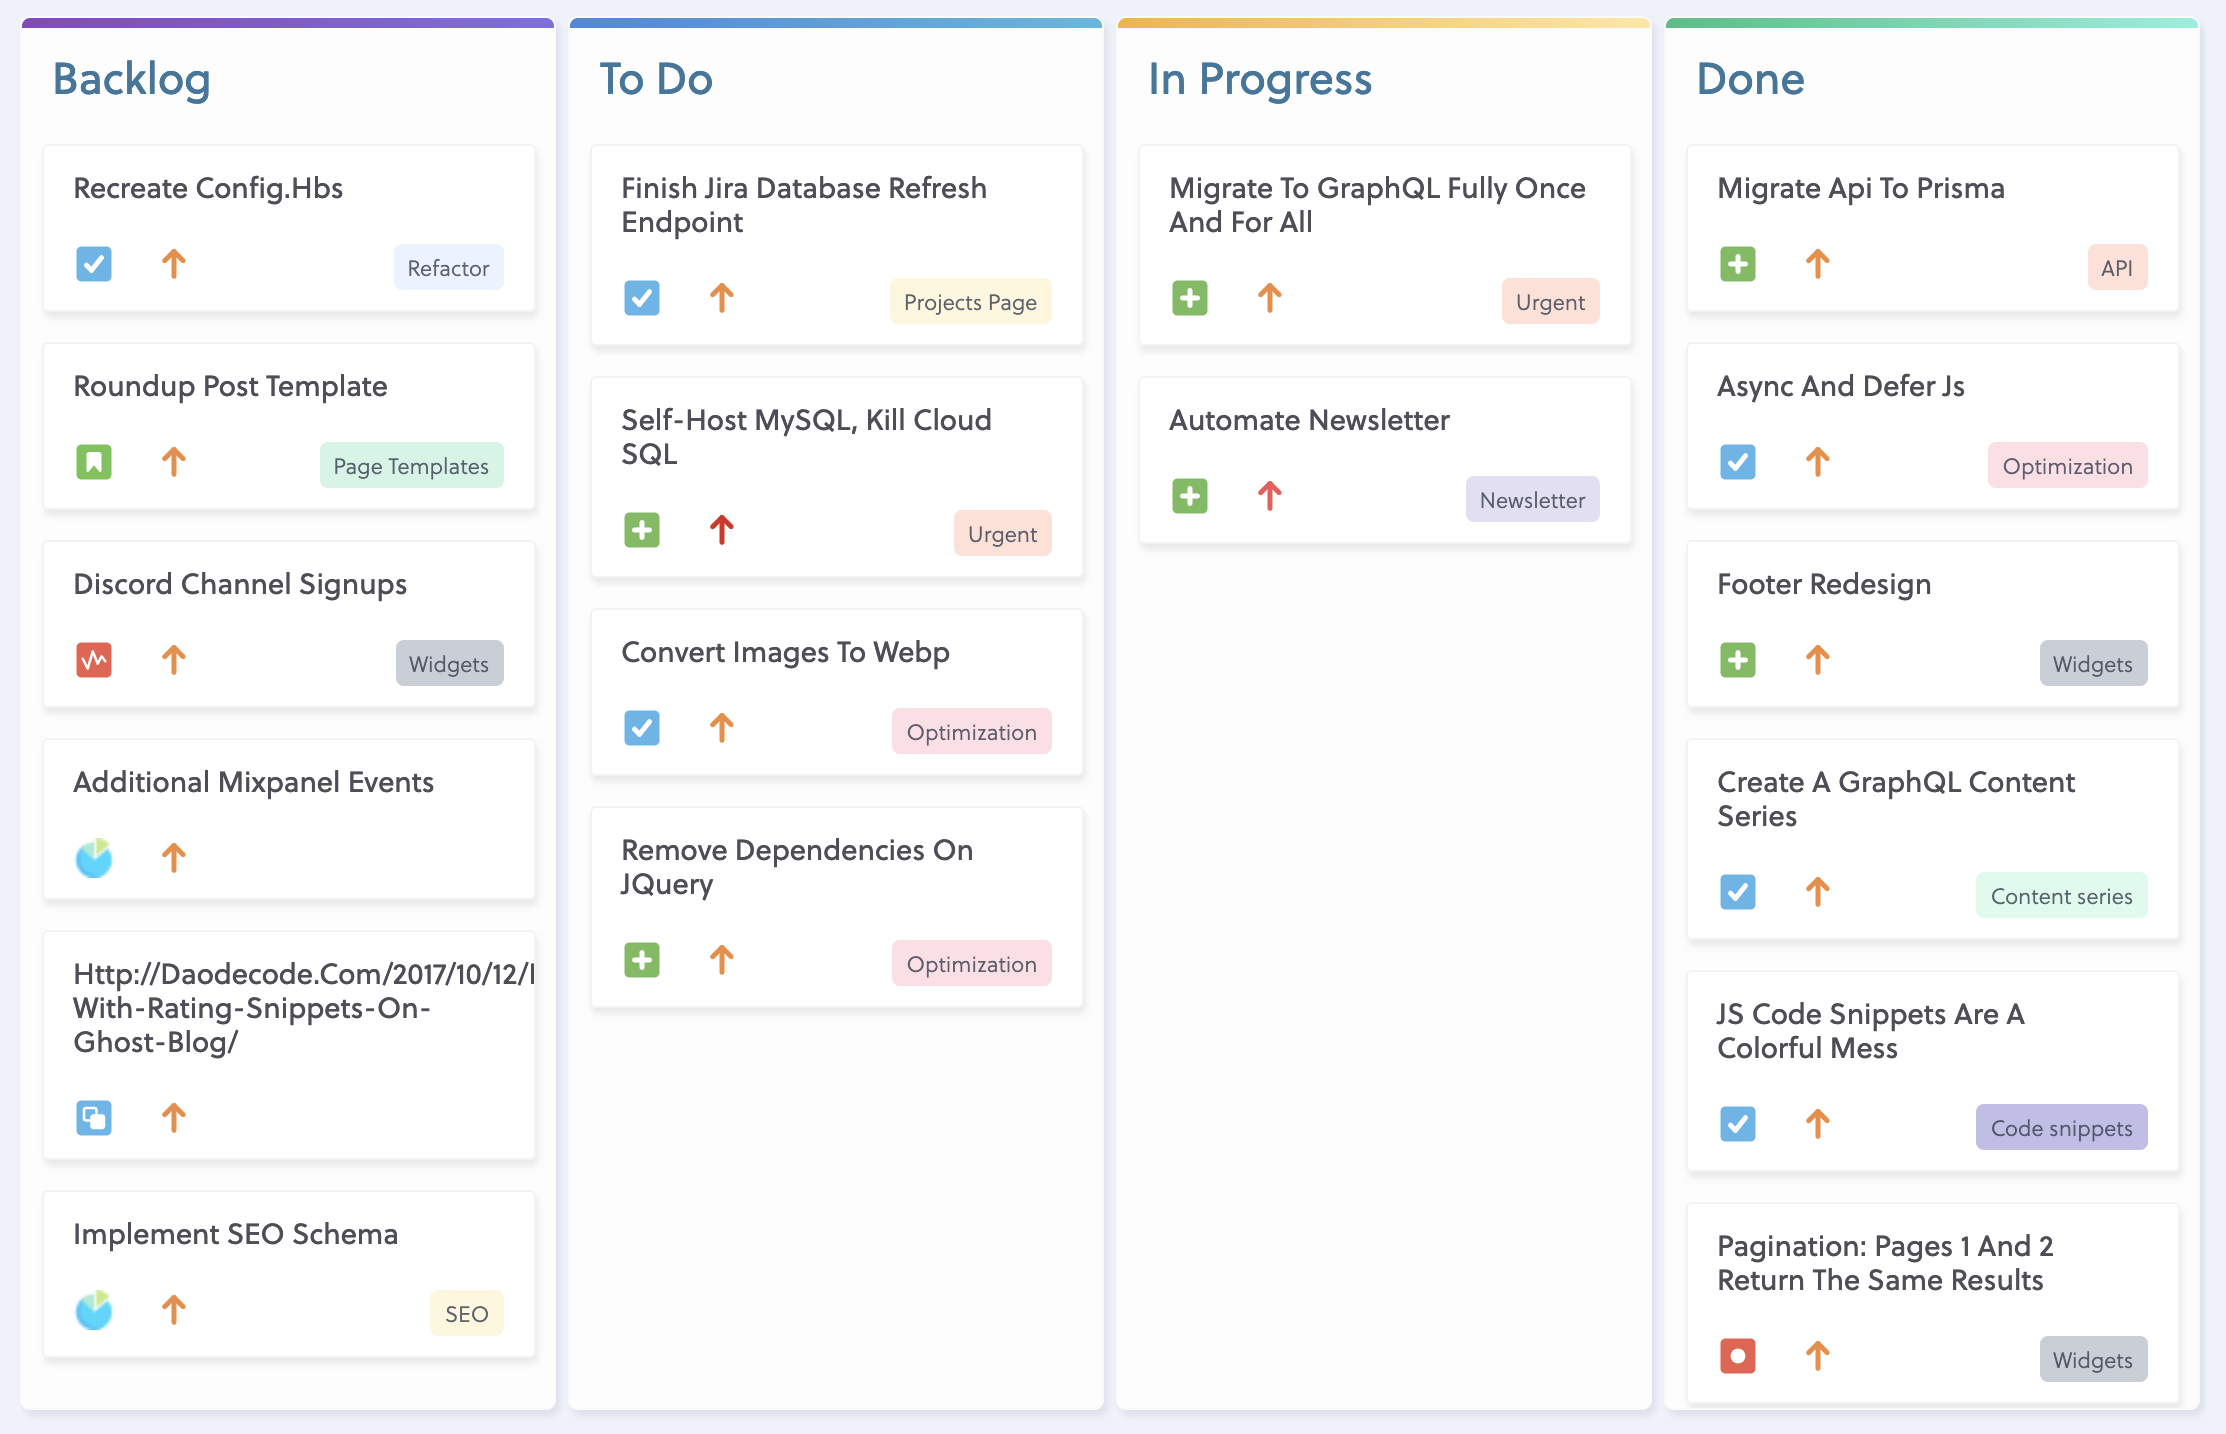 Building an ETL Pipeline: From JIRA to SQL | Hackers and Slackers